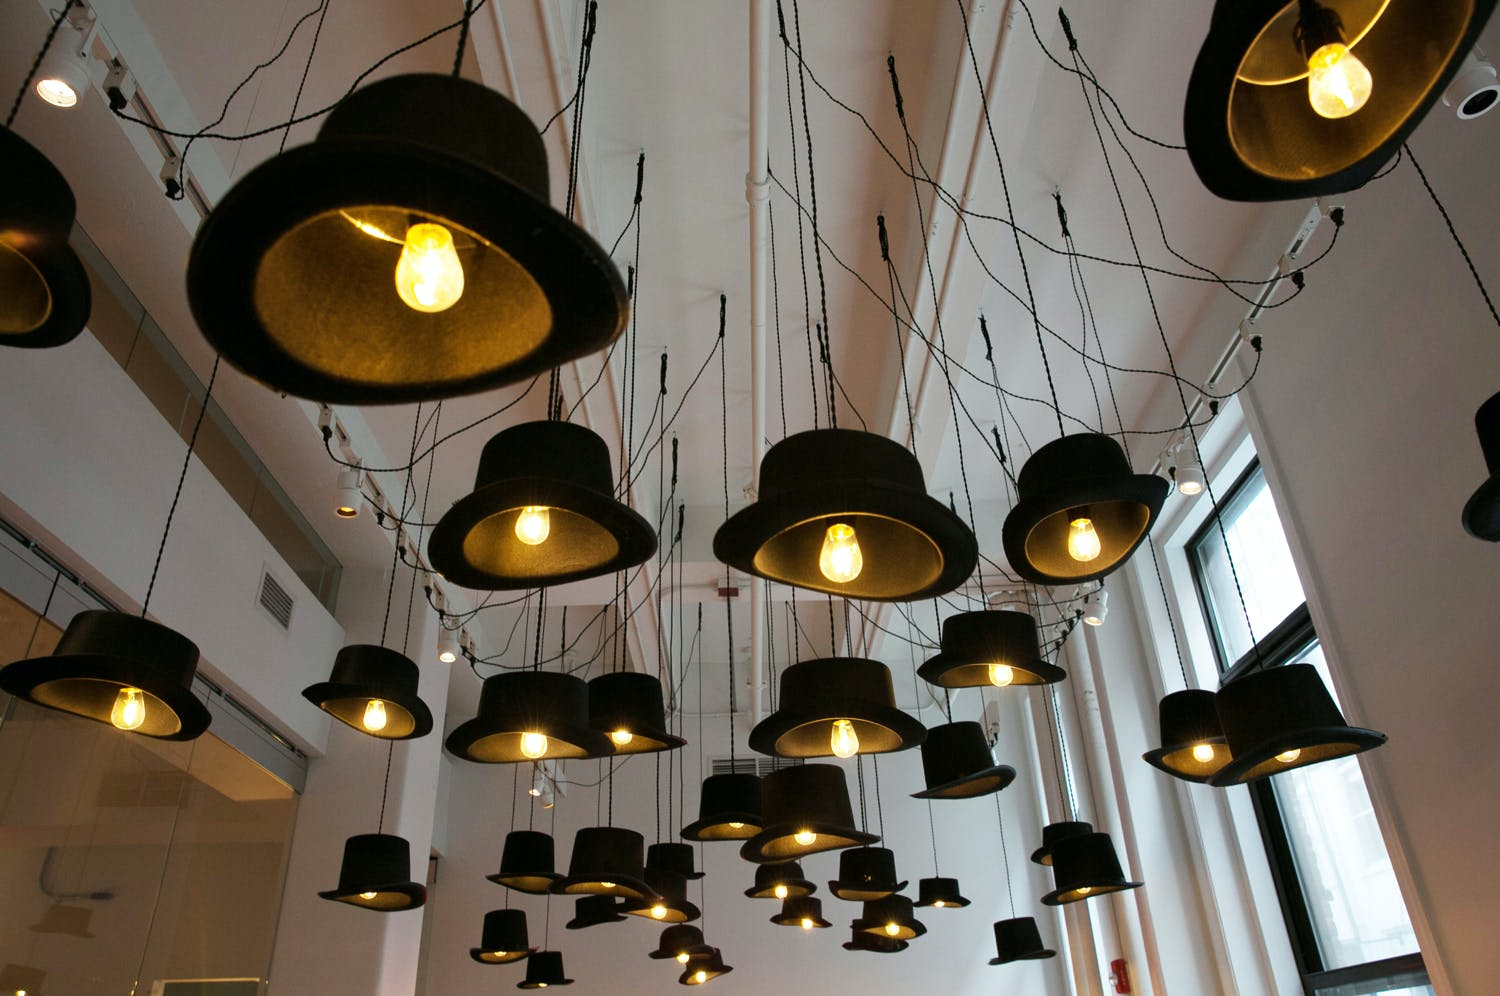 Light bulbs in top hats hanging from the ceiling